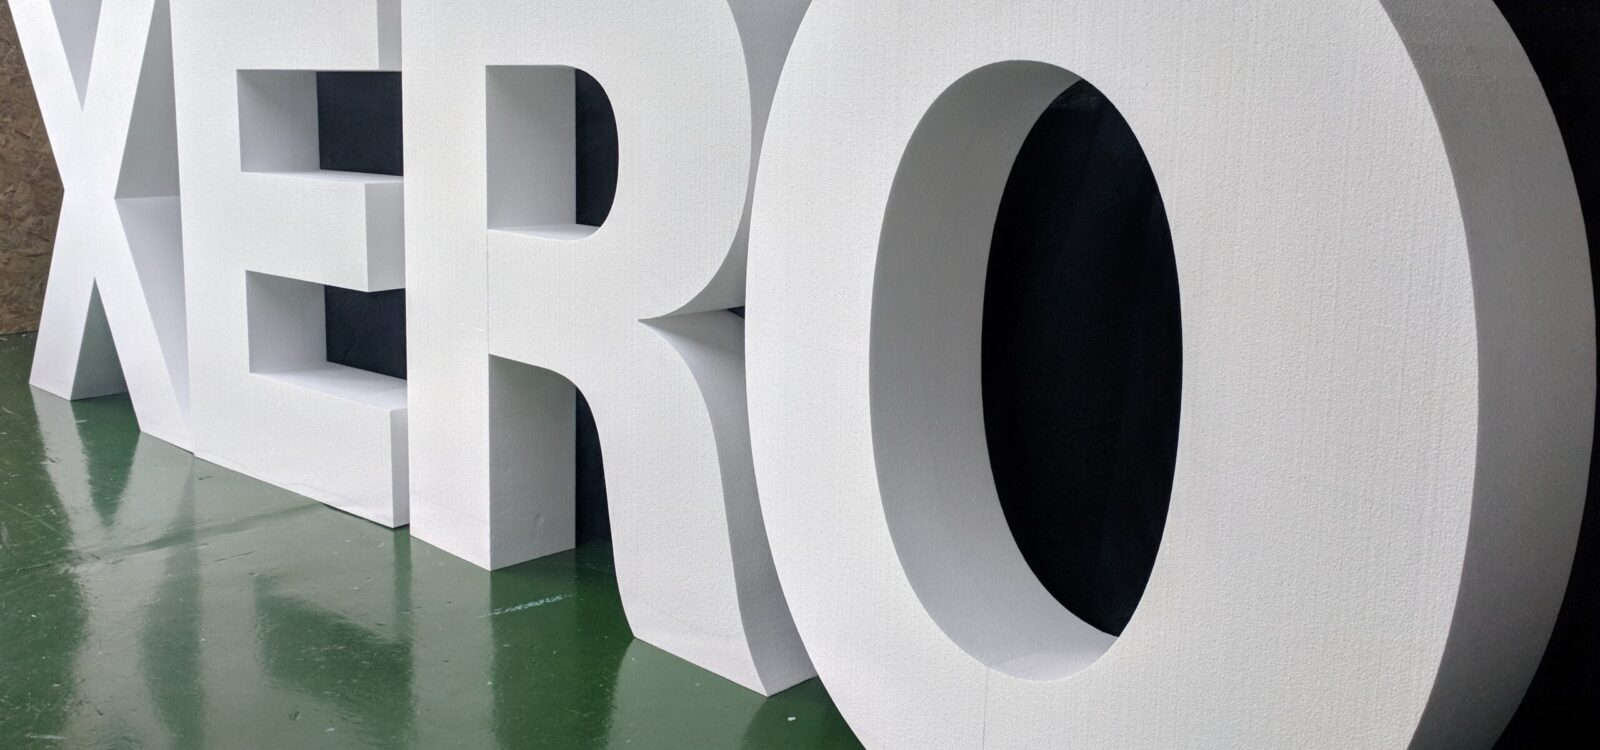 Xero Plain Polystyrene Letters For A Conference